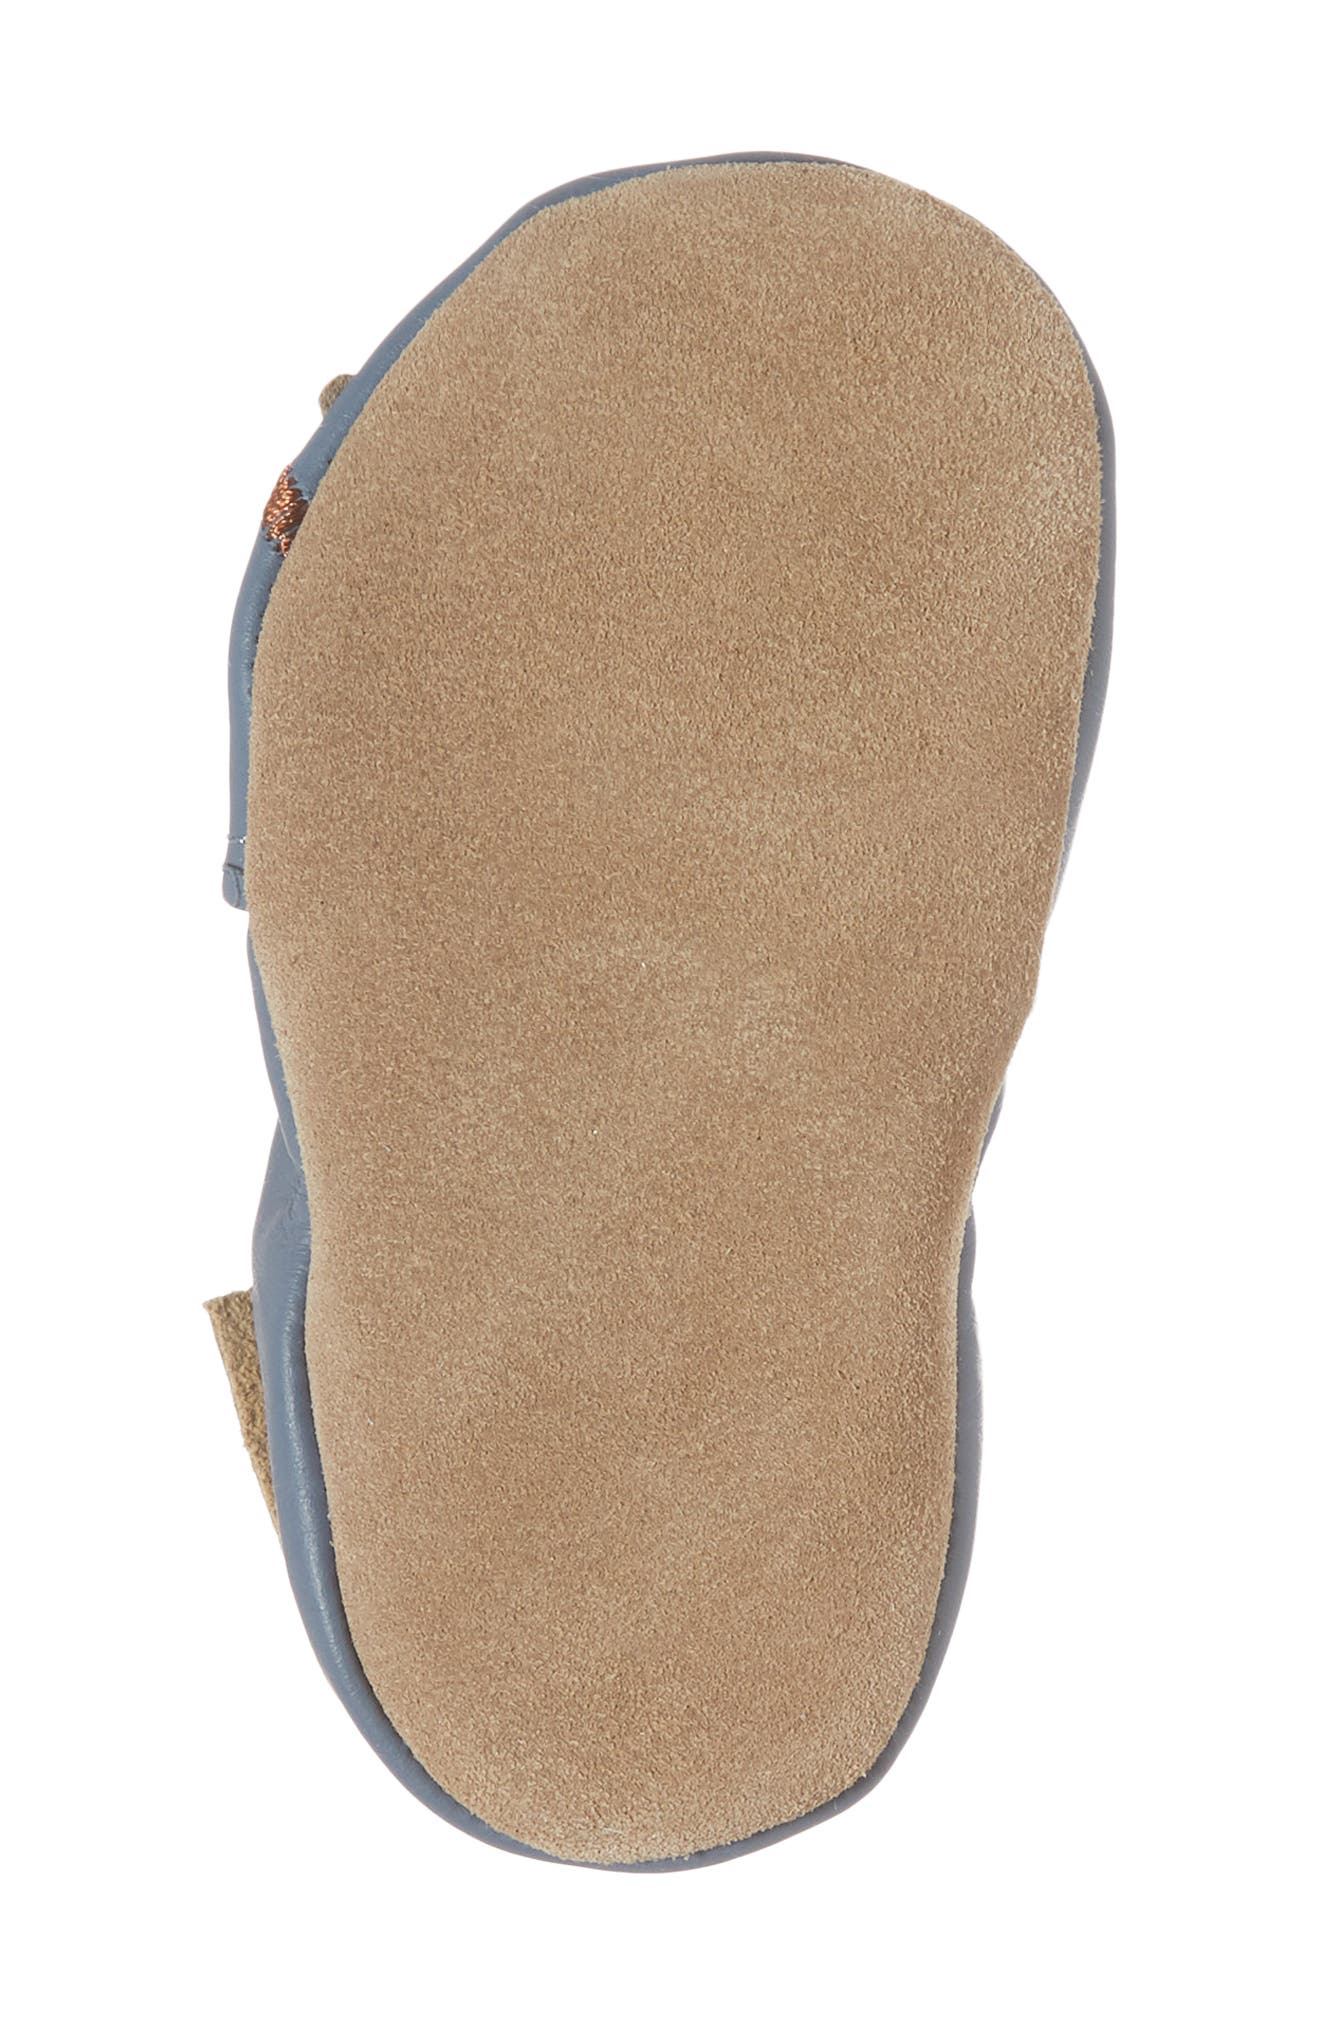 Toucan Tom Moccasin Crib Shoe,                             Alternate thumbnail 6, color,                             China Blue